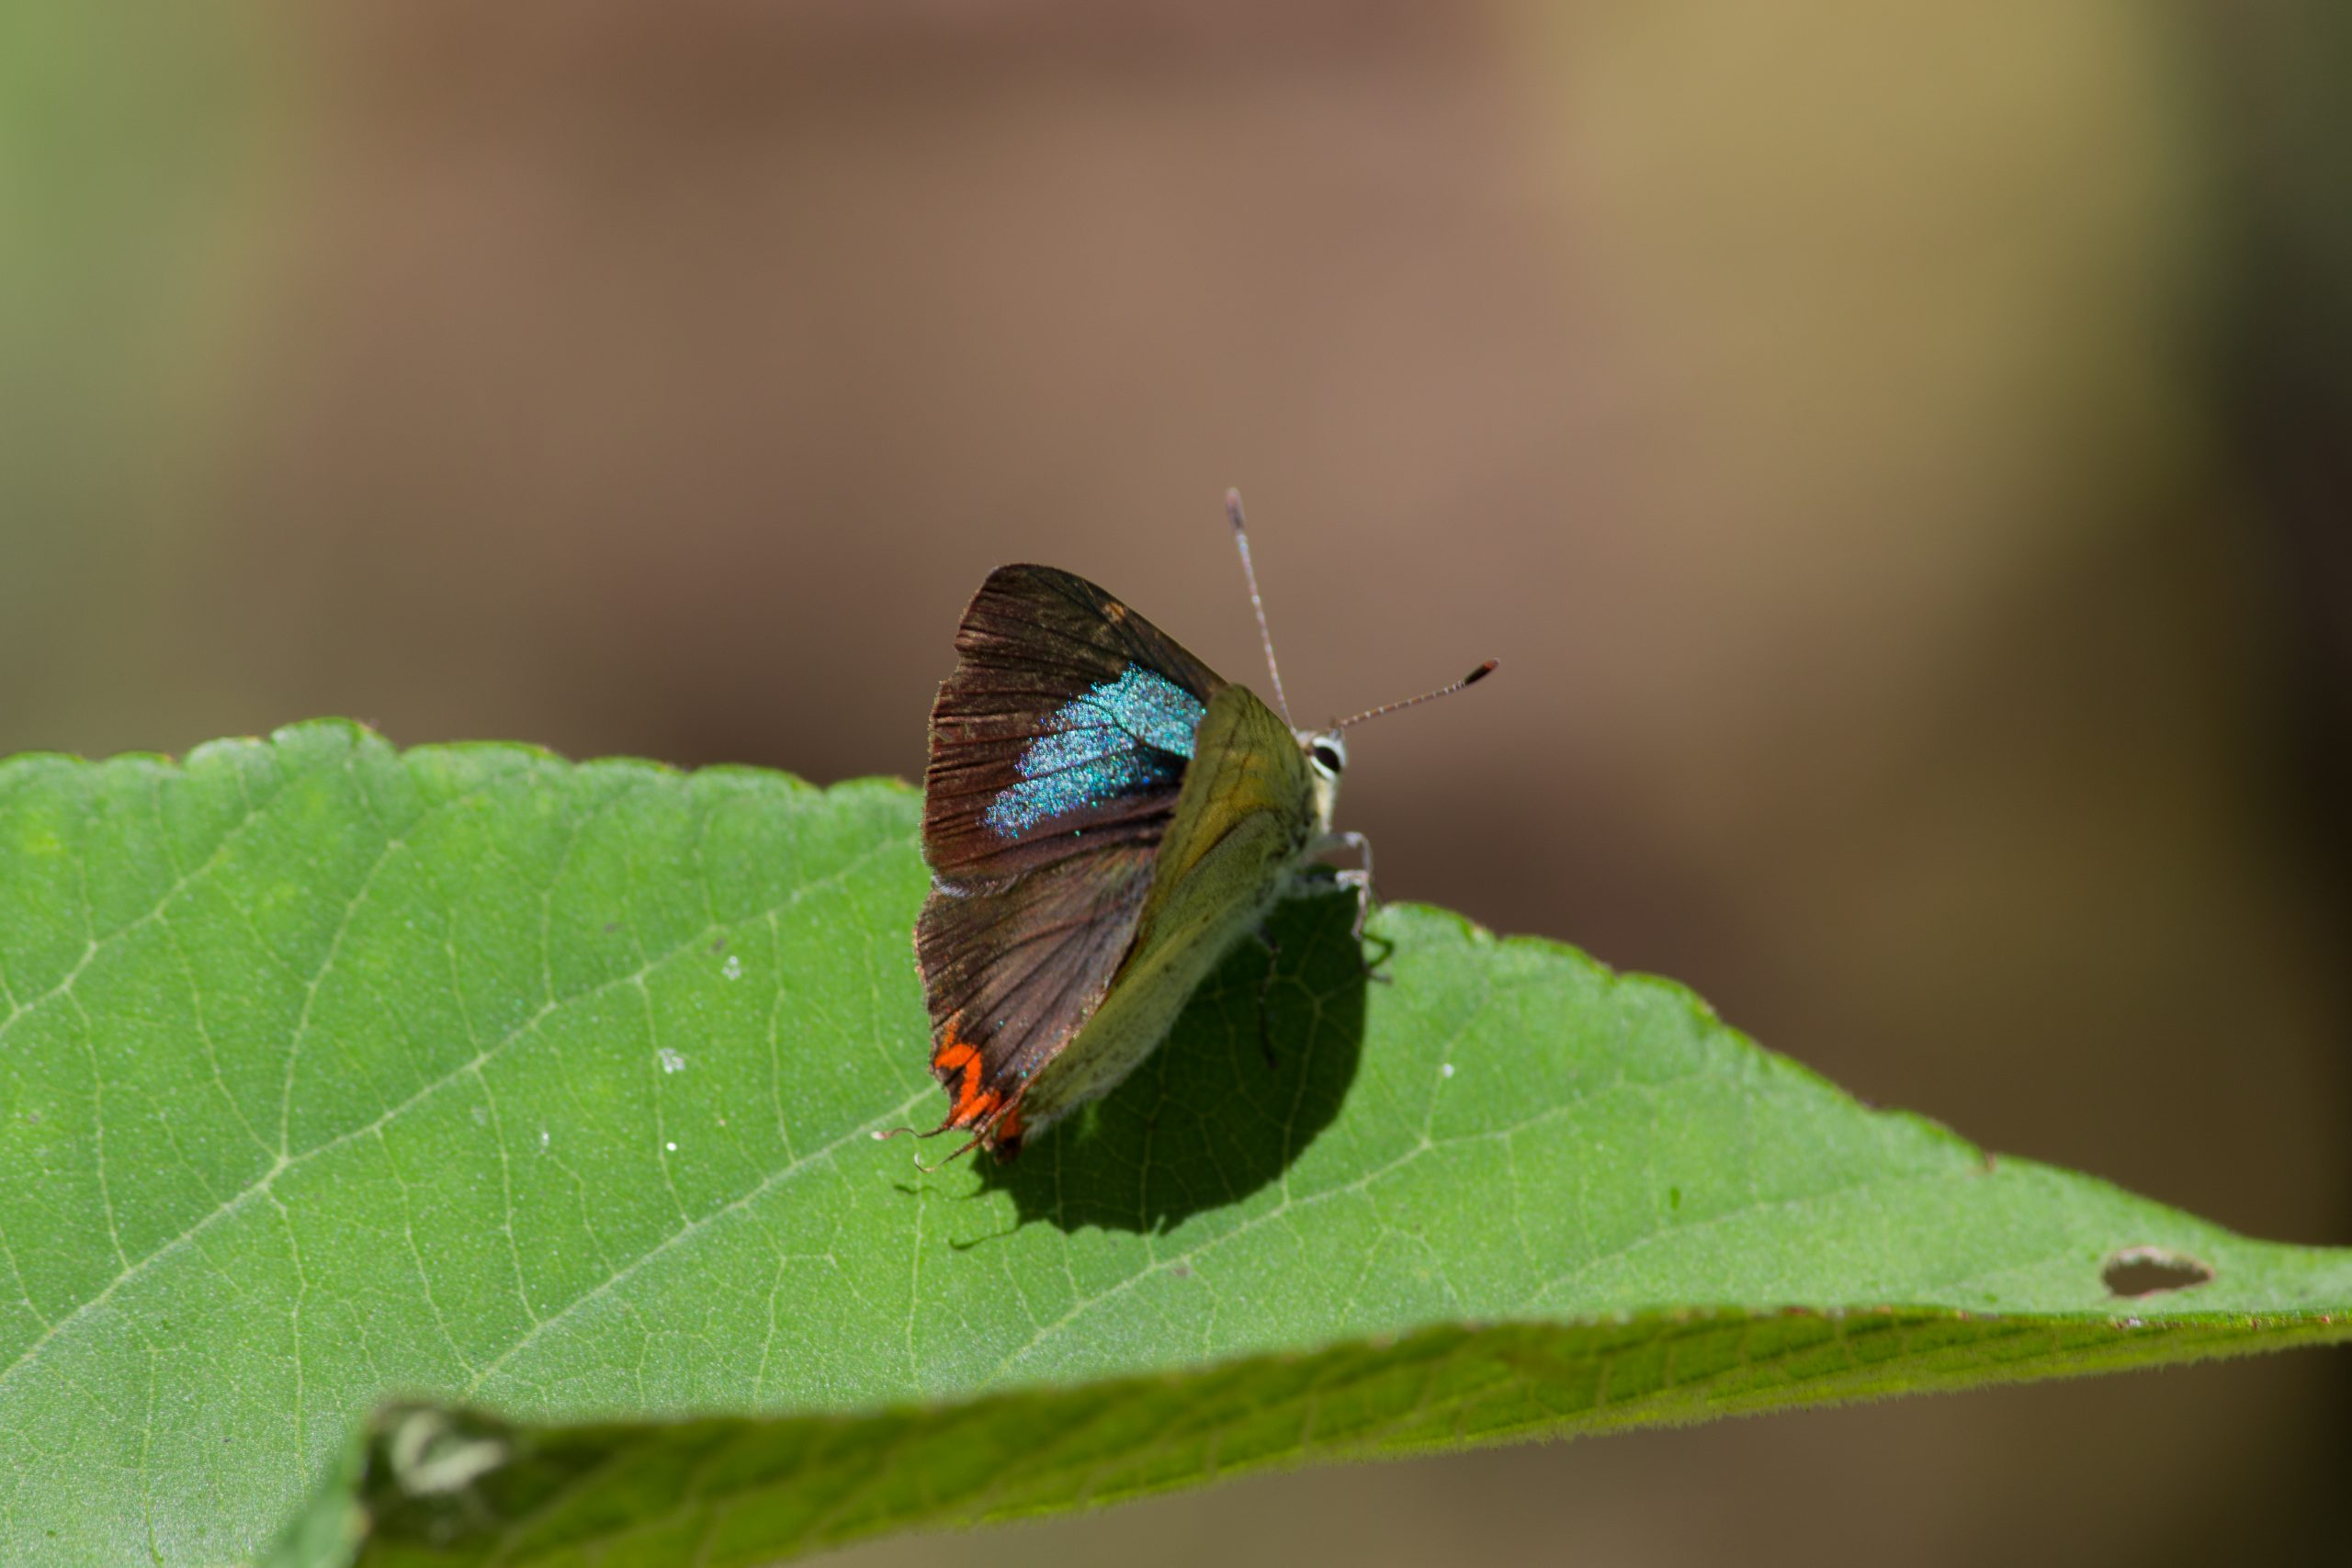 Lovely butterfly on a leaf.